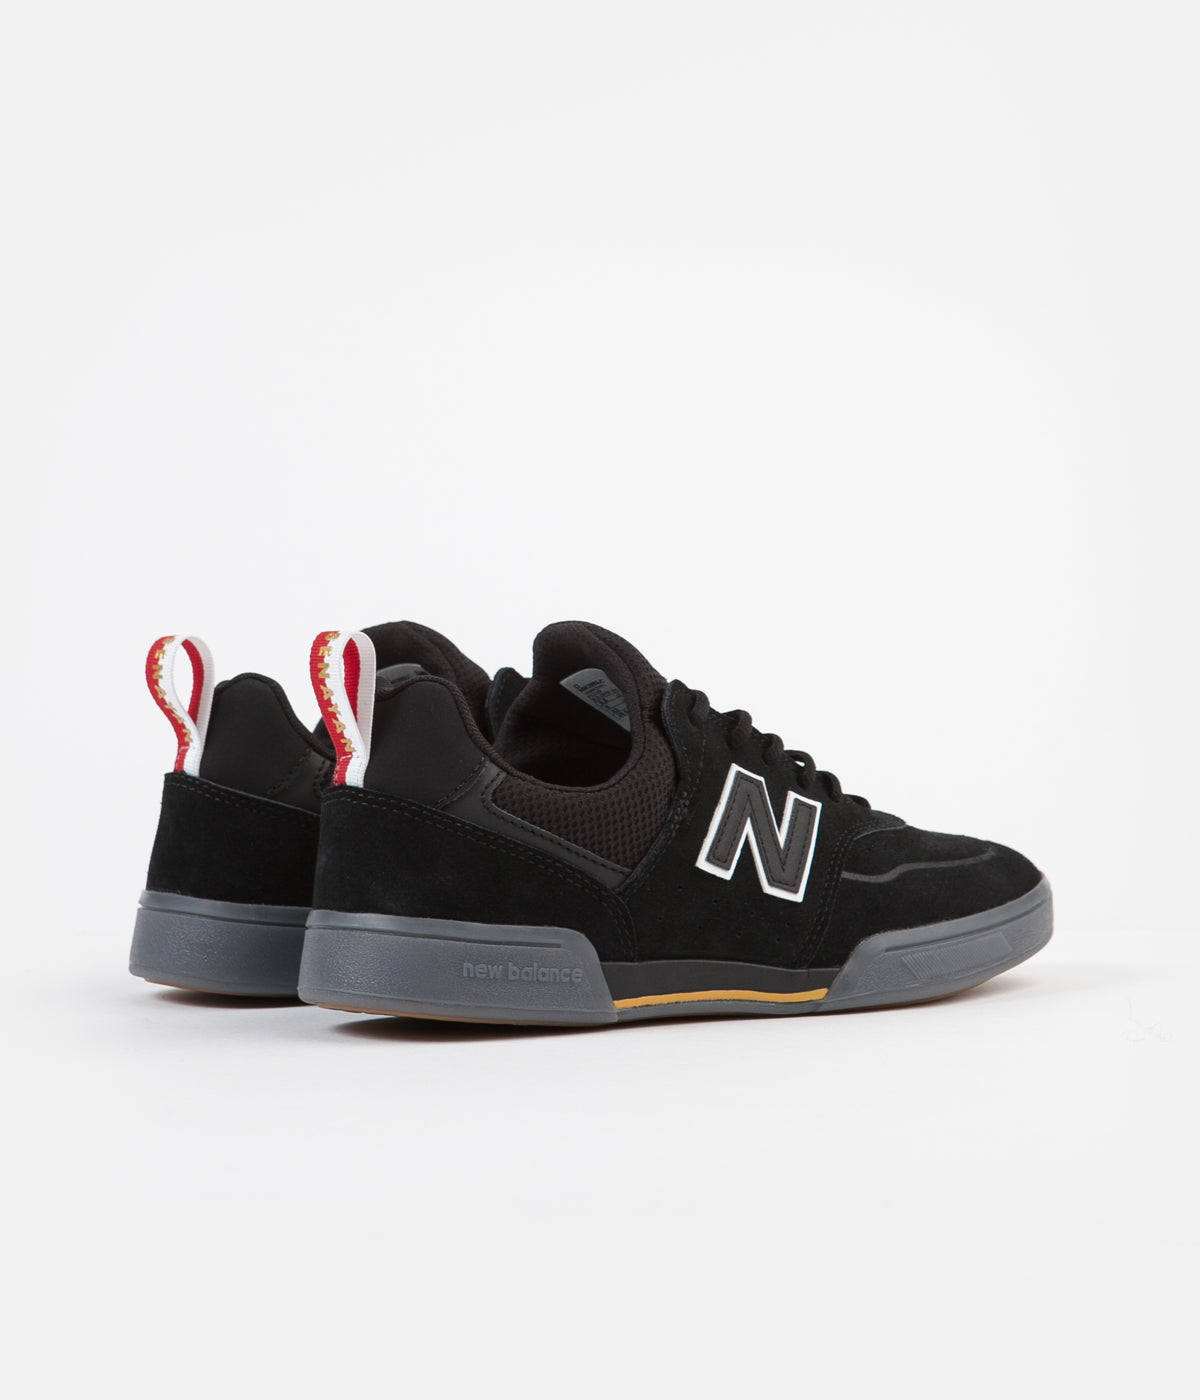 New Balance Numeric 288S Shoes - Black / Grey